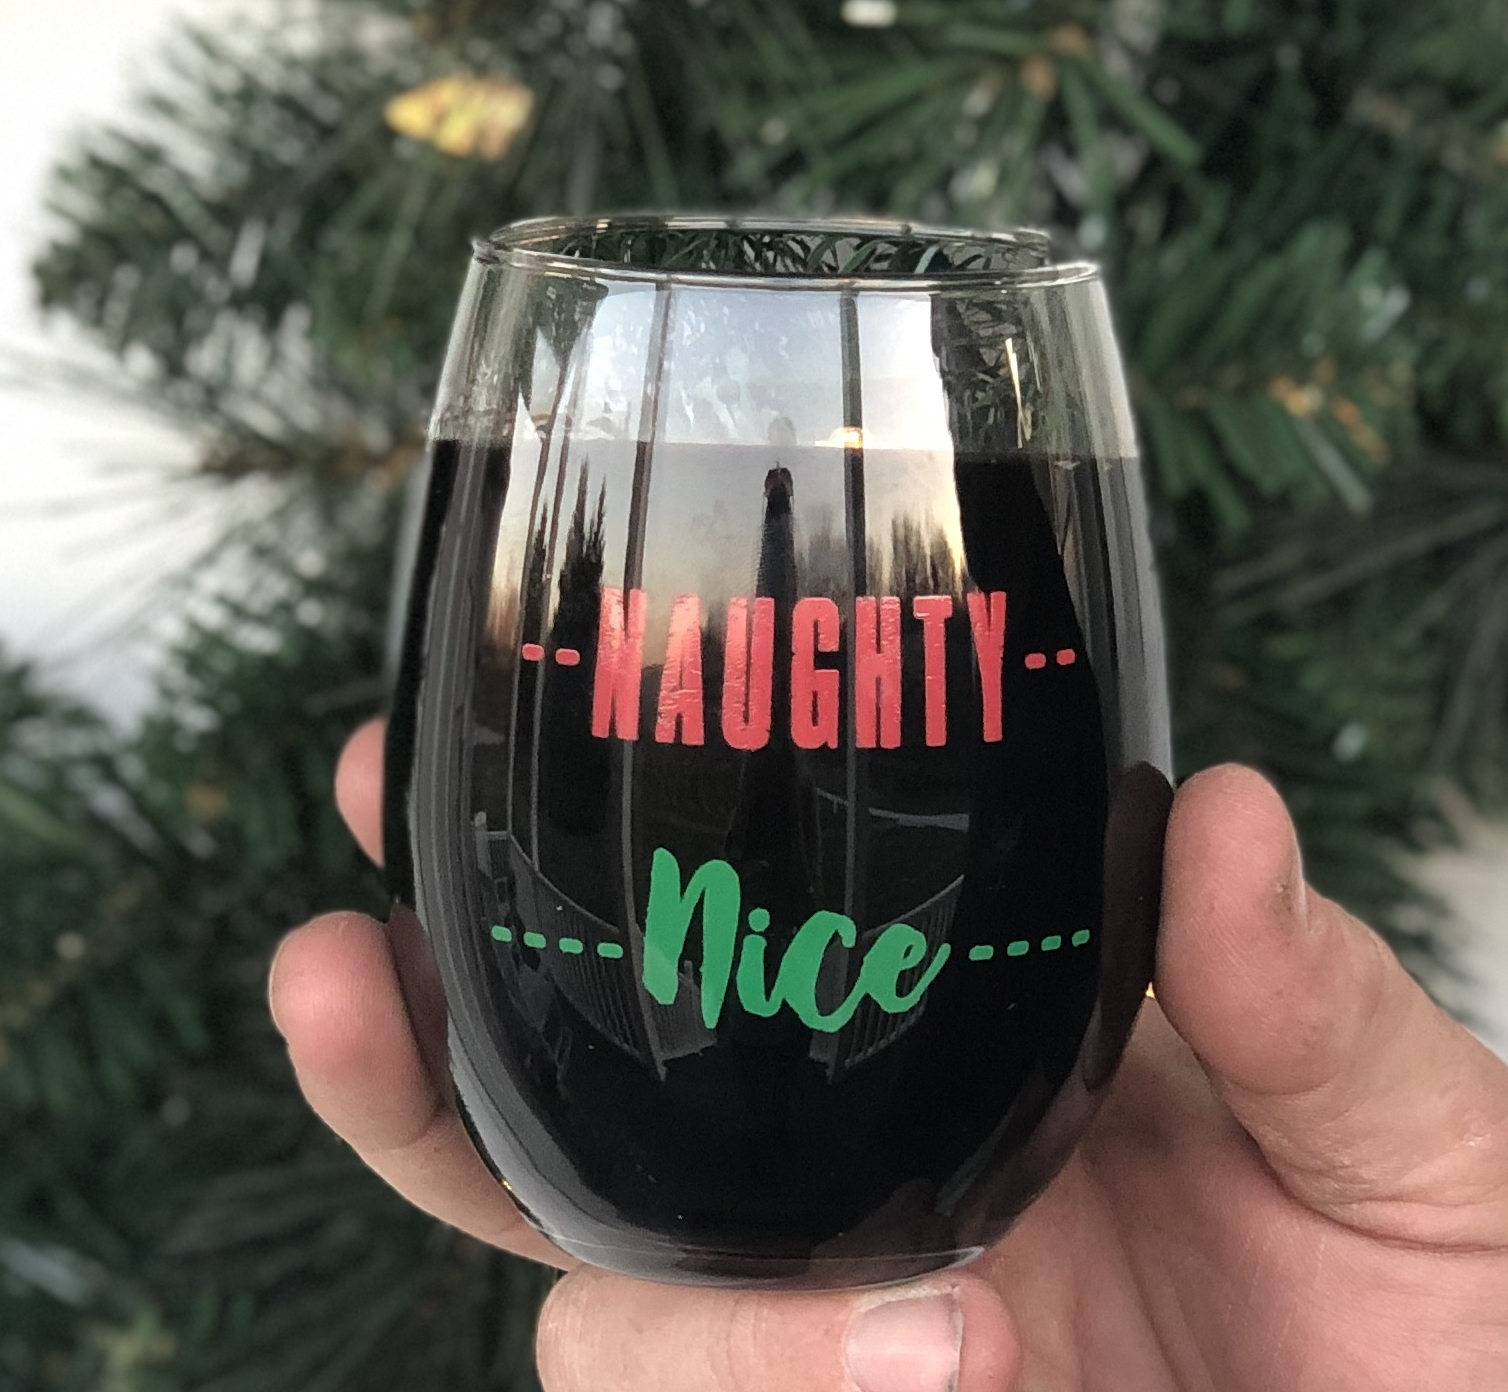 Jowler Creek Winery in Kansas City, Missouri has fun holiday wine events for Thanksgiving and Christmas near you. They are Missouri's first green winery and have cute wine glasses and fun holiday wine glasses.